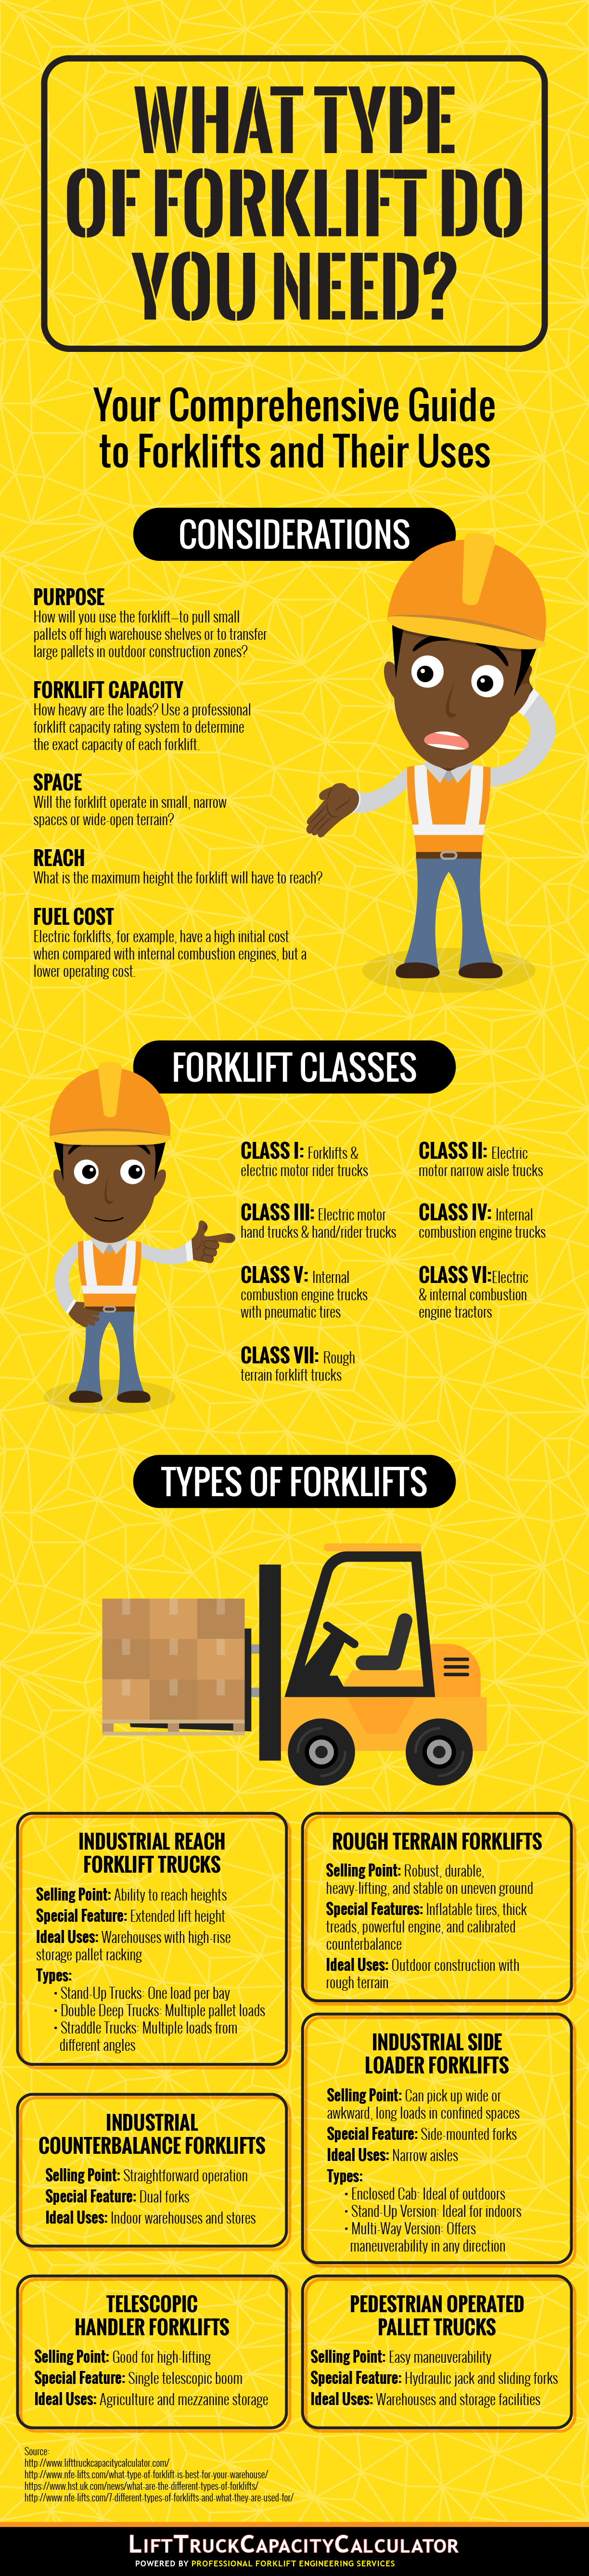 forklift classes lifttruckcapacitycalculator